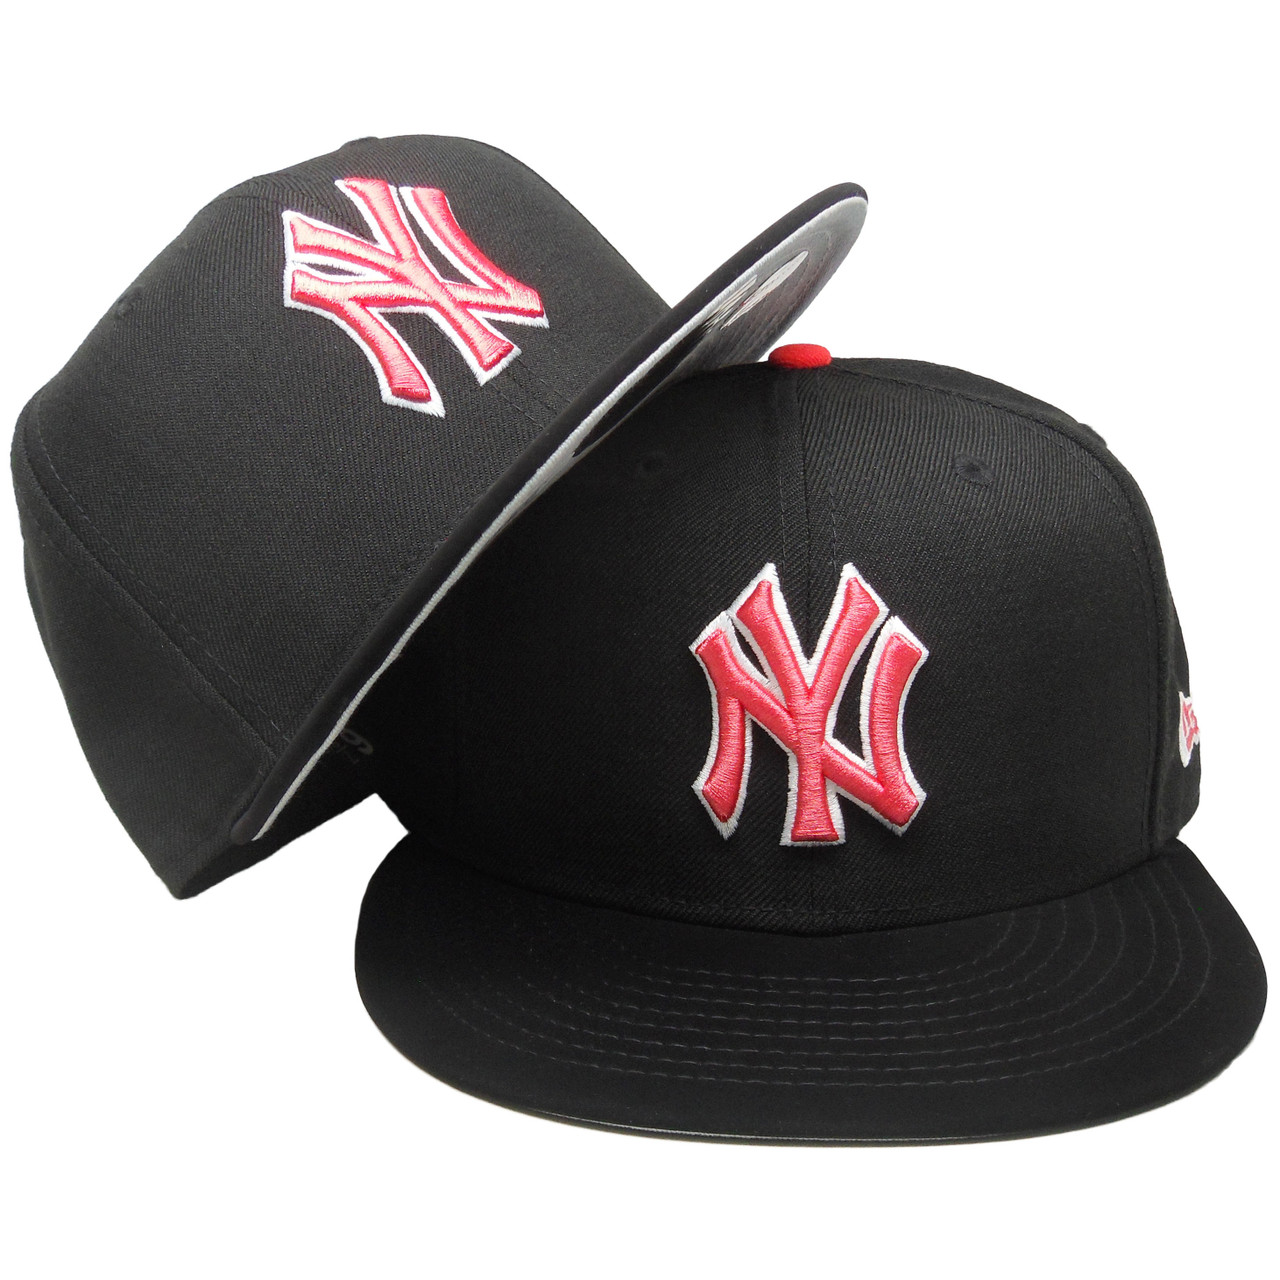 online store 21592 3f717 New York Yankees New Era Custom 59Fifty Fitted - Black, Infrared, White -  ECapsUnlimited.com